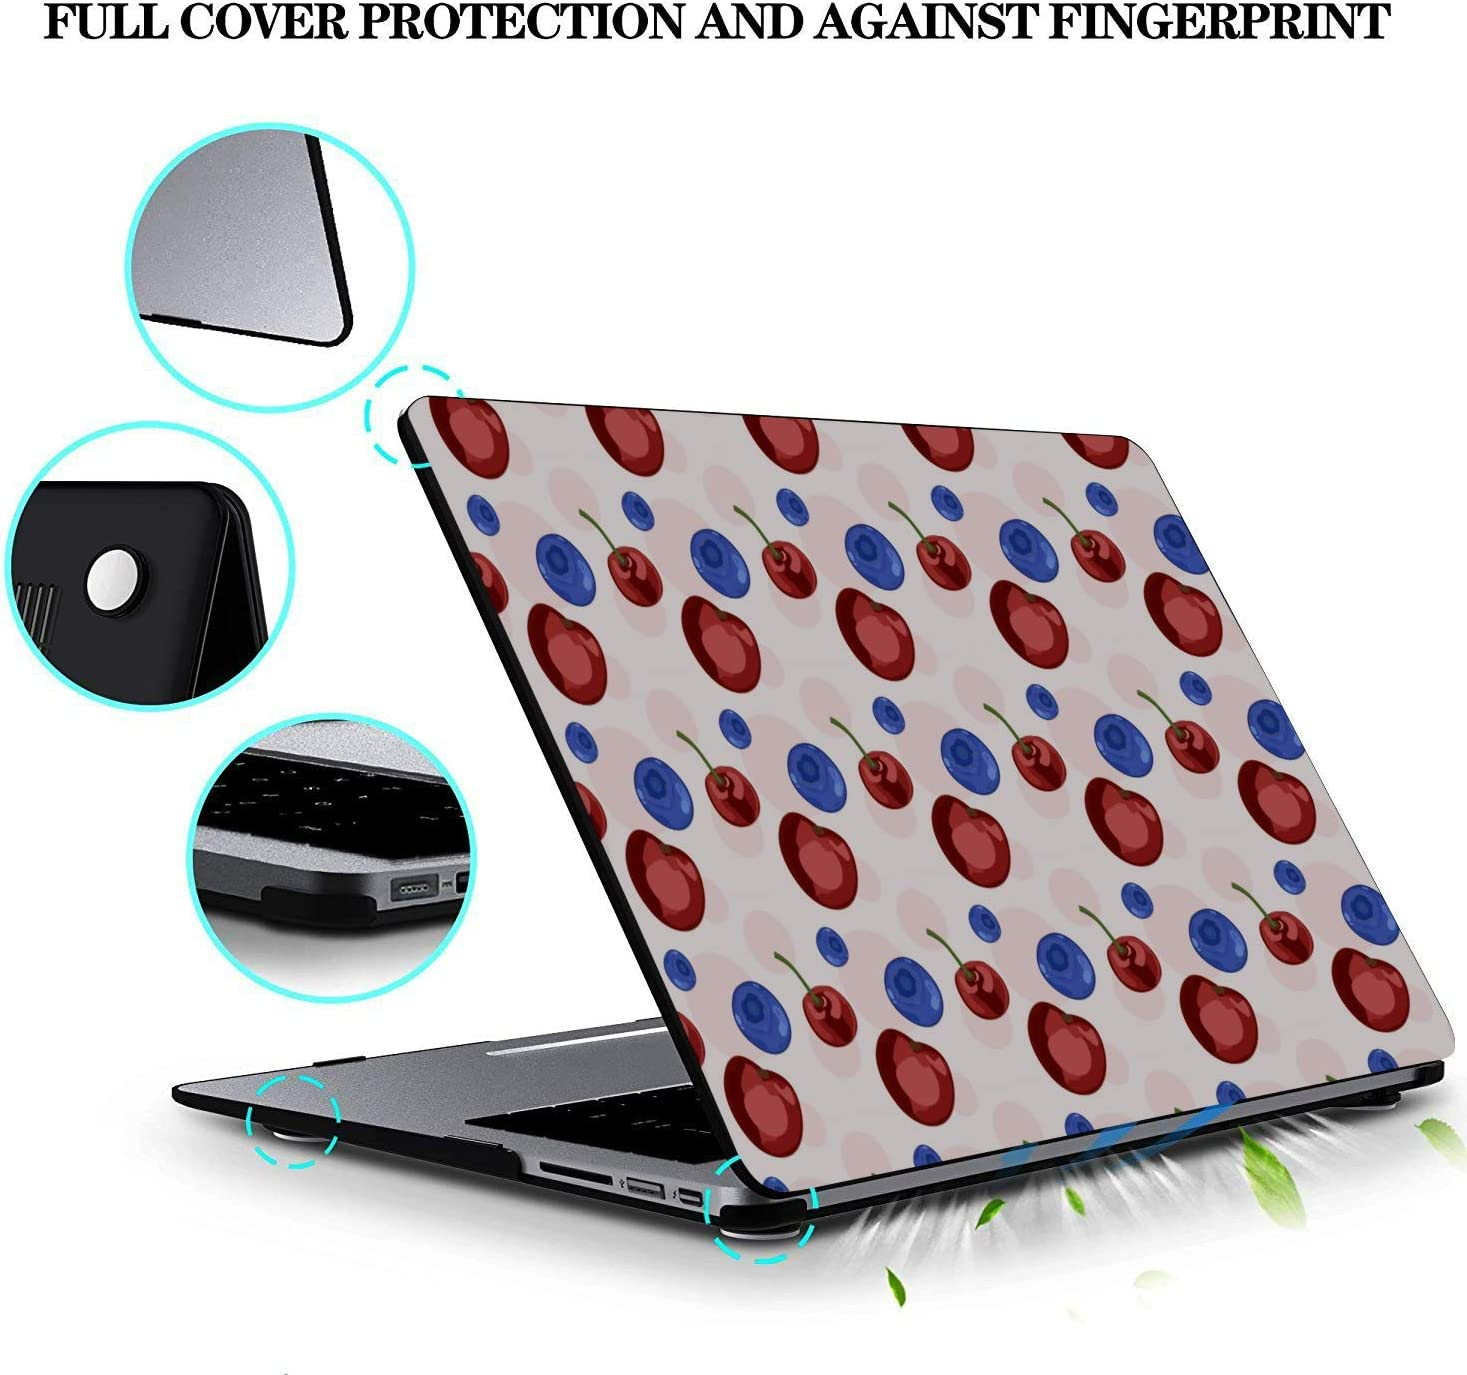 MacBook Pro Accessories Summer Fruit Cherry Blueberry Drink Plastic Hard Shell Compatible Mac Air 11 Pro 13 15 Mac Book Pro Case Protection for MacBook 2016-2019 Version